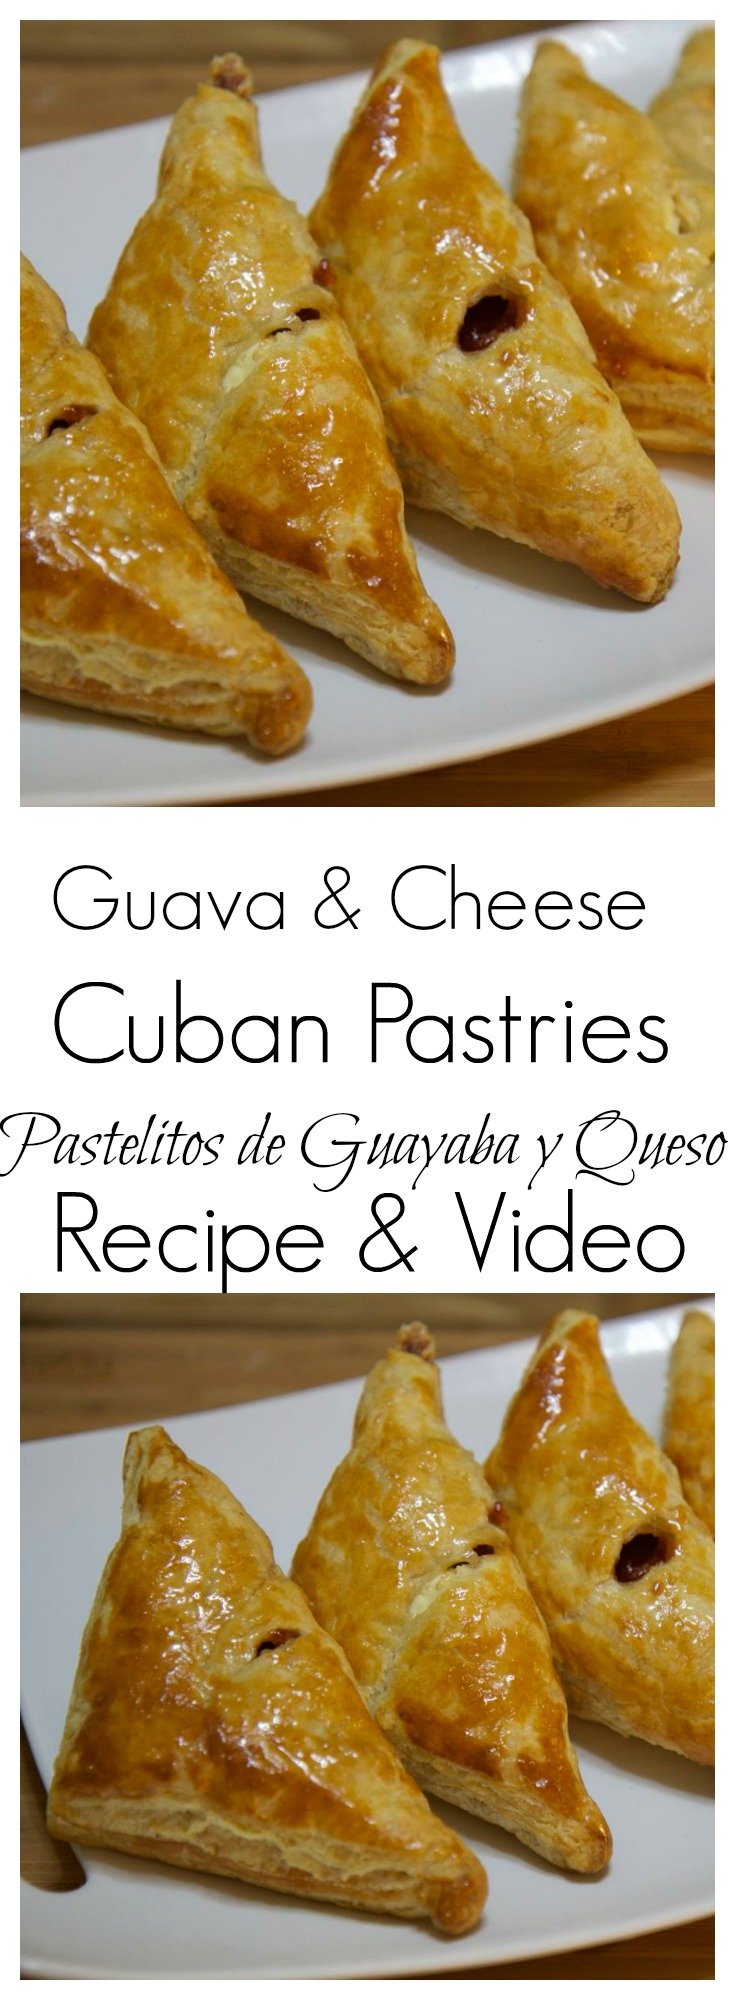 Learn how to make these guava and cheese cuban pastries from Cookedbyjulie.com today!